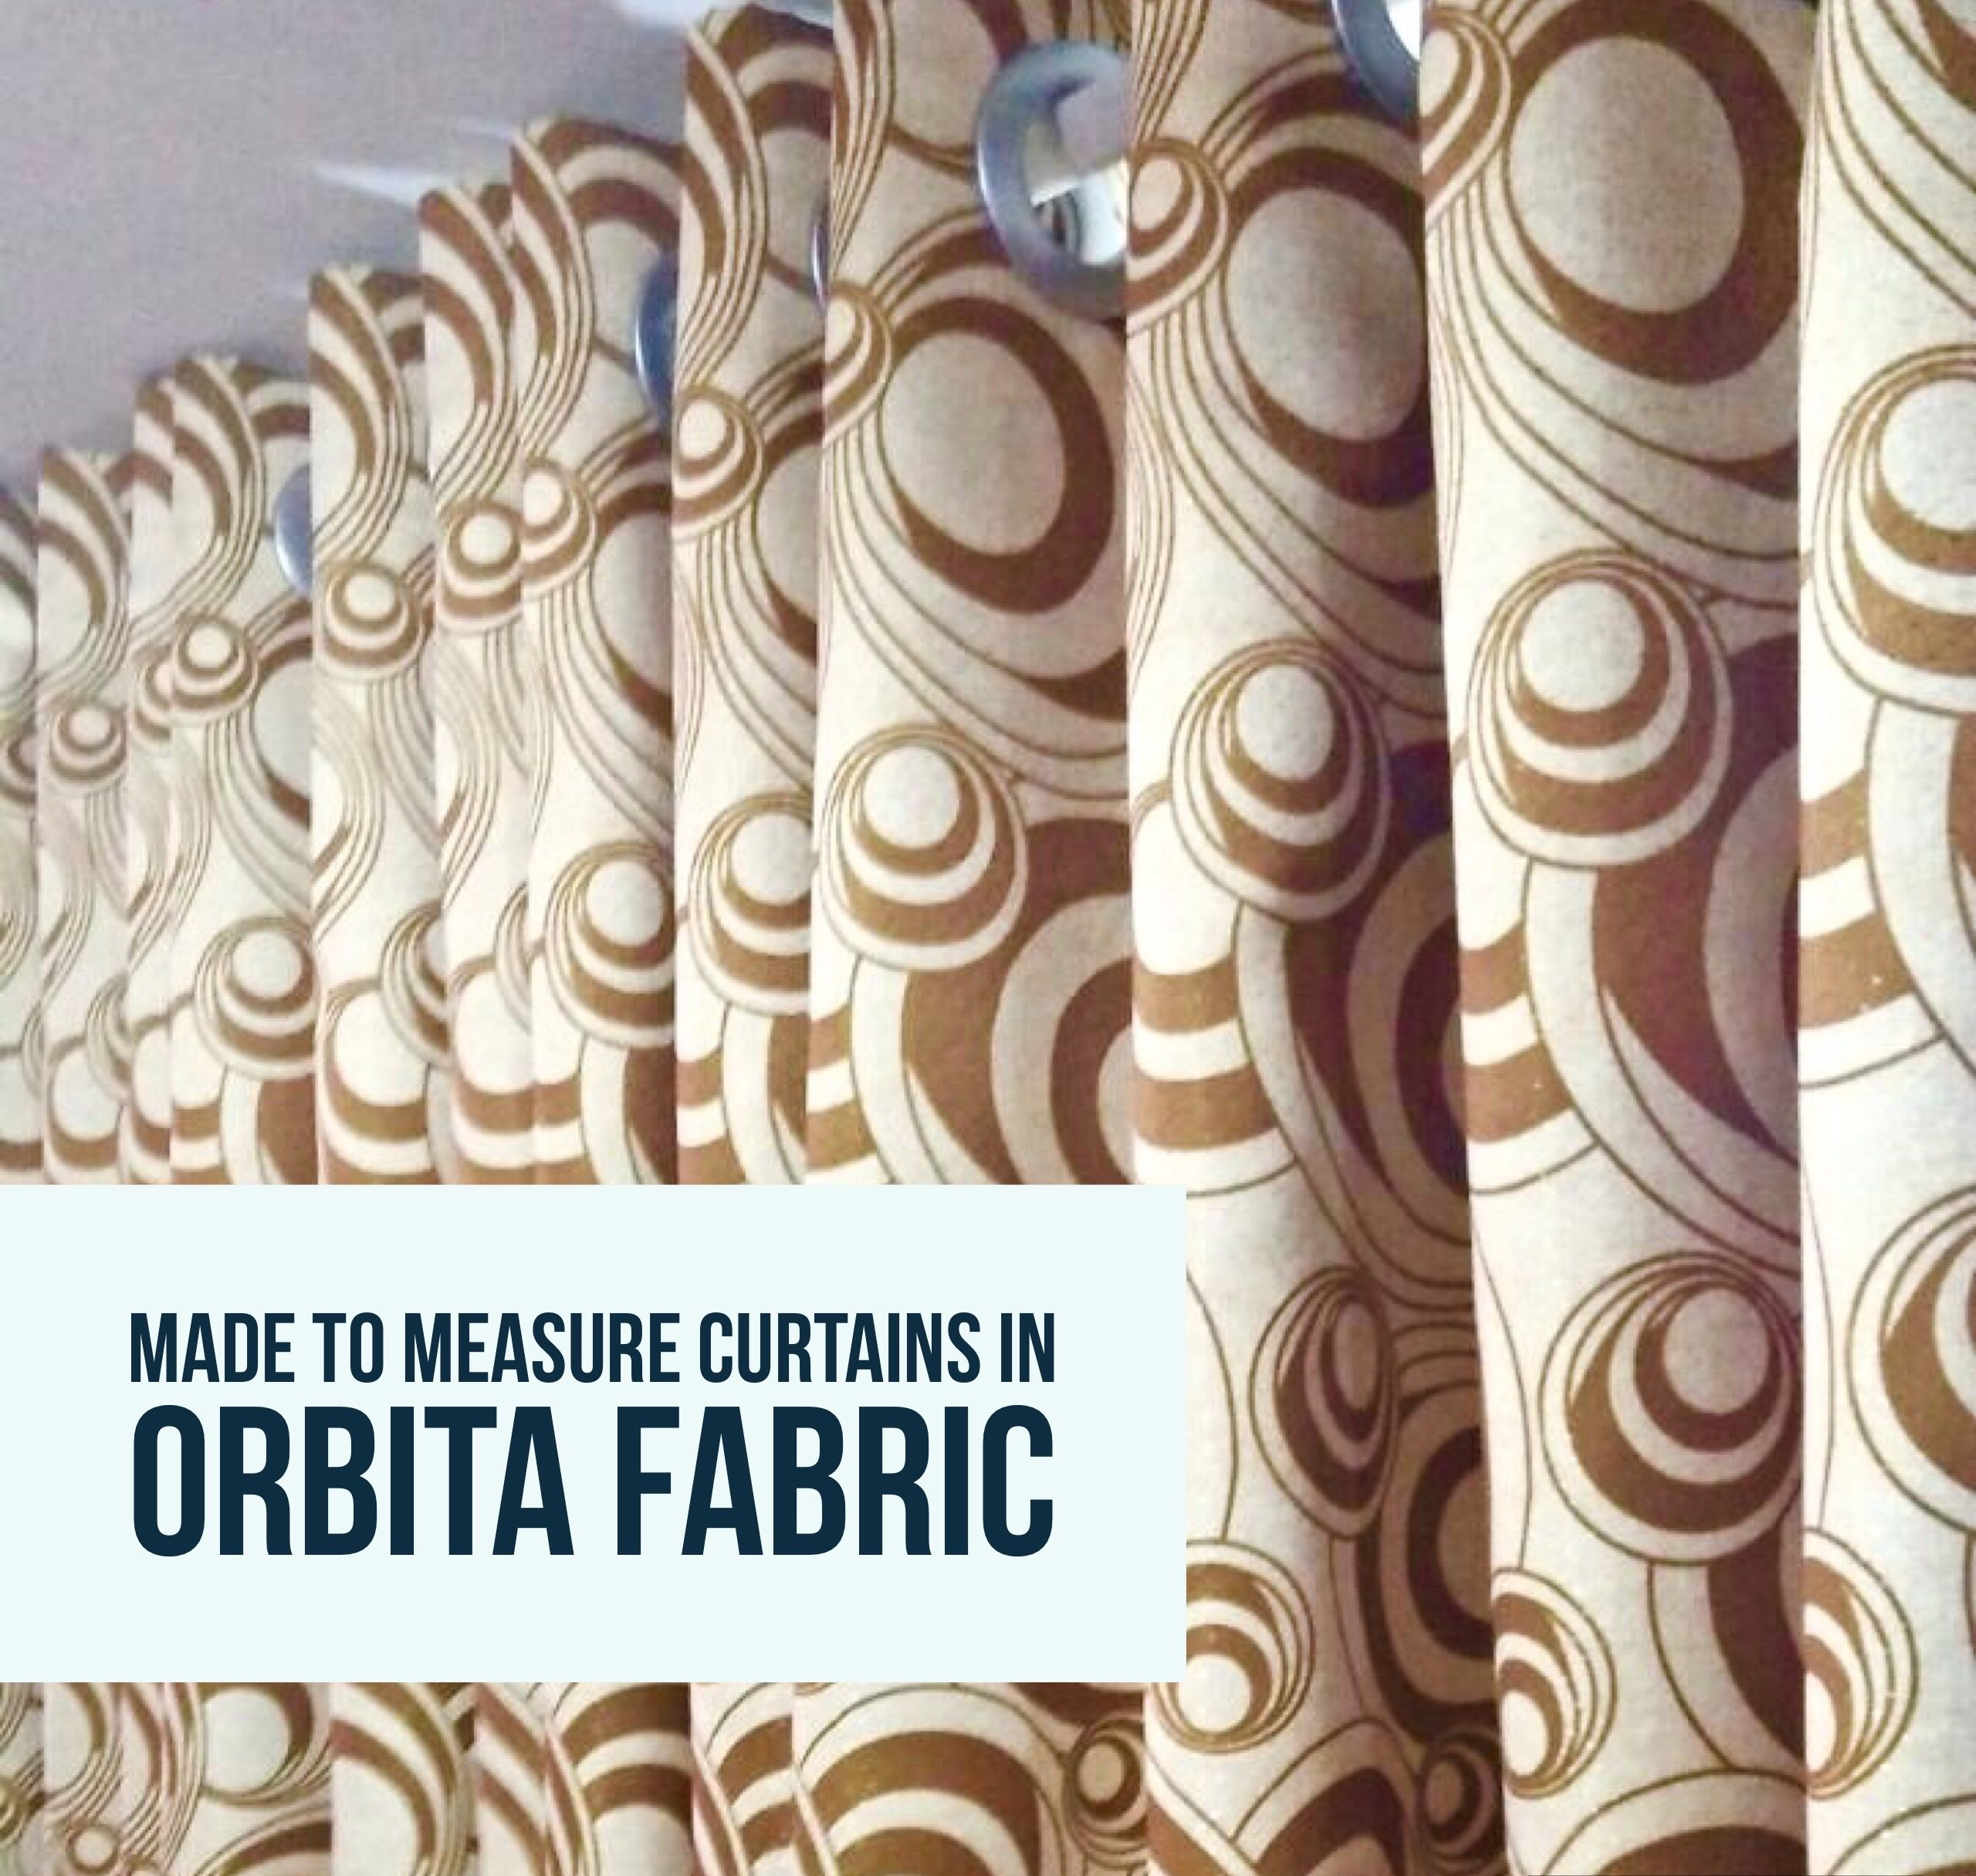 Made To Measure Curtains In Orbita Fabric By Curtains Fabx Order Your Fabric Or Bespoke Curtains Htt Made To Measure Curtains Fabric Stores Online Curtains